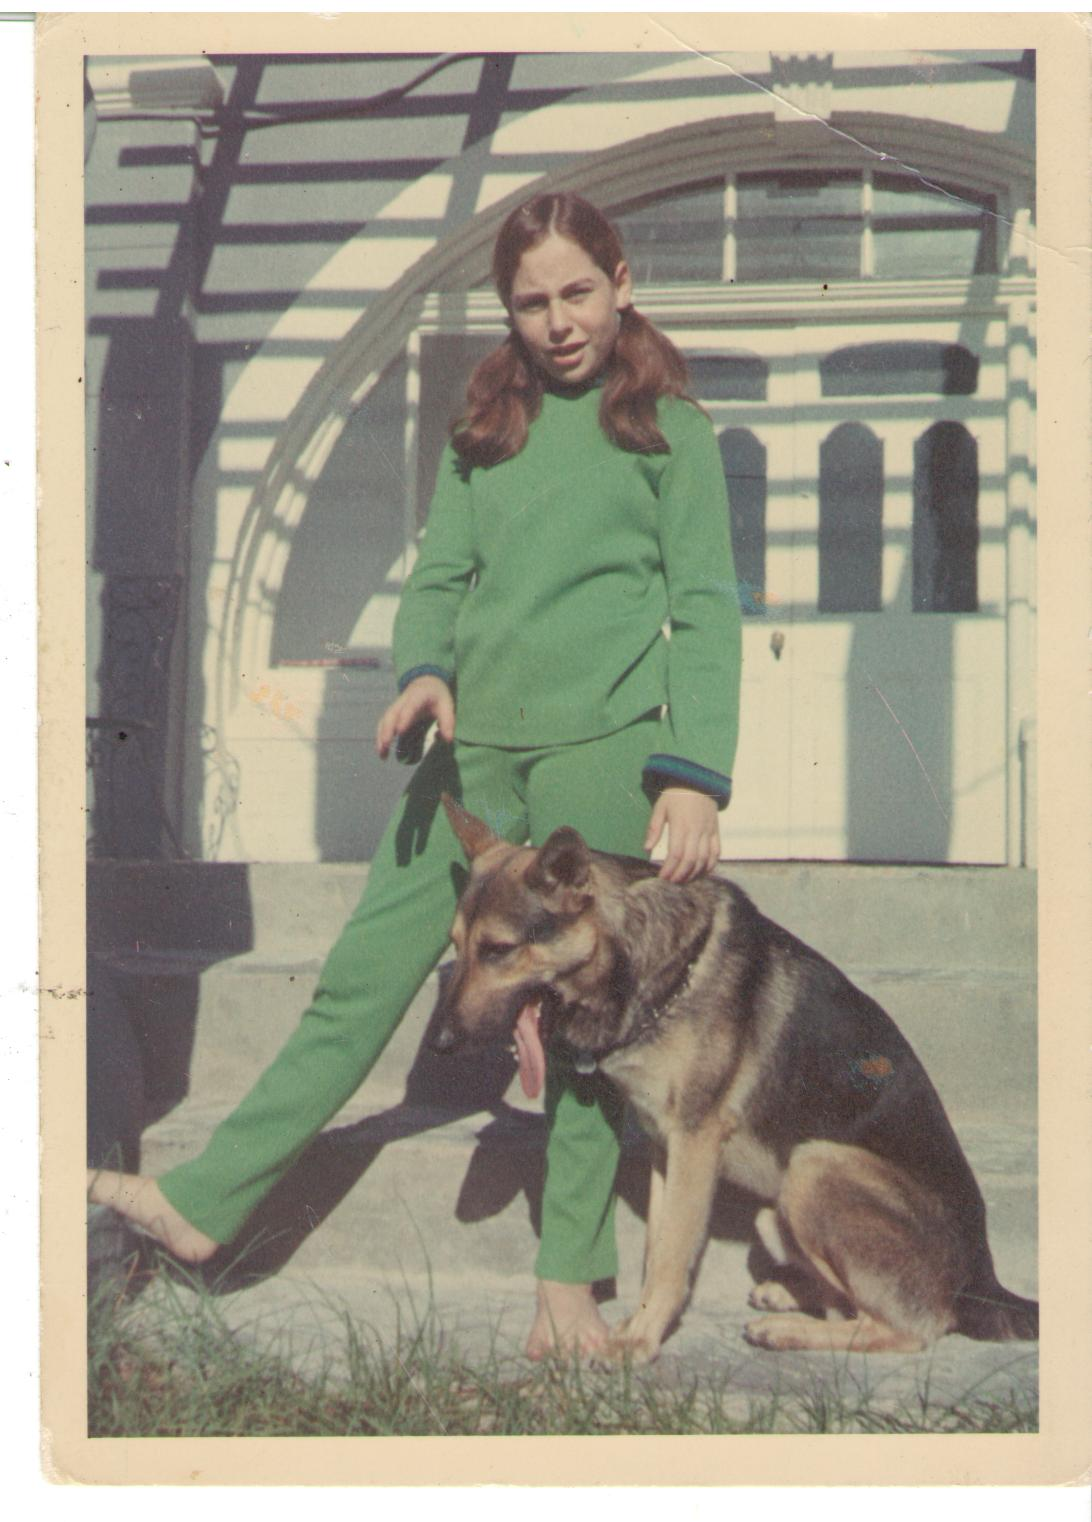 11 year old Jen with her dog Sultan